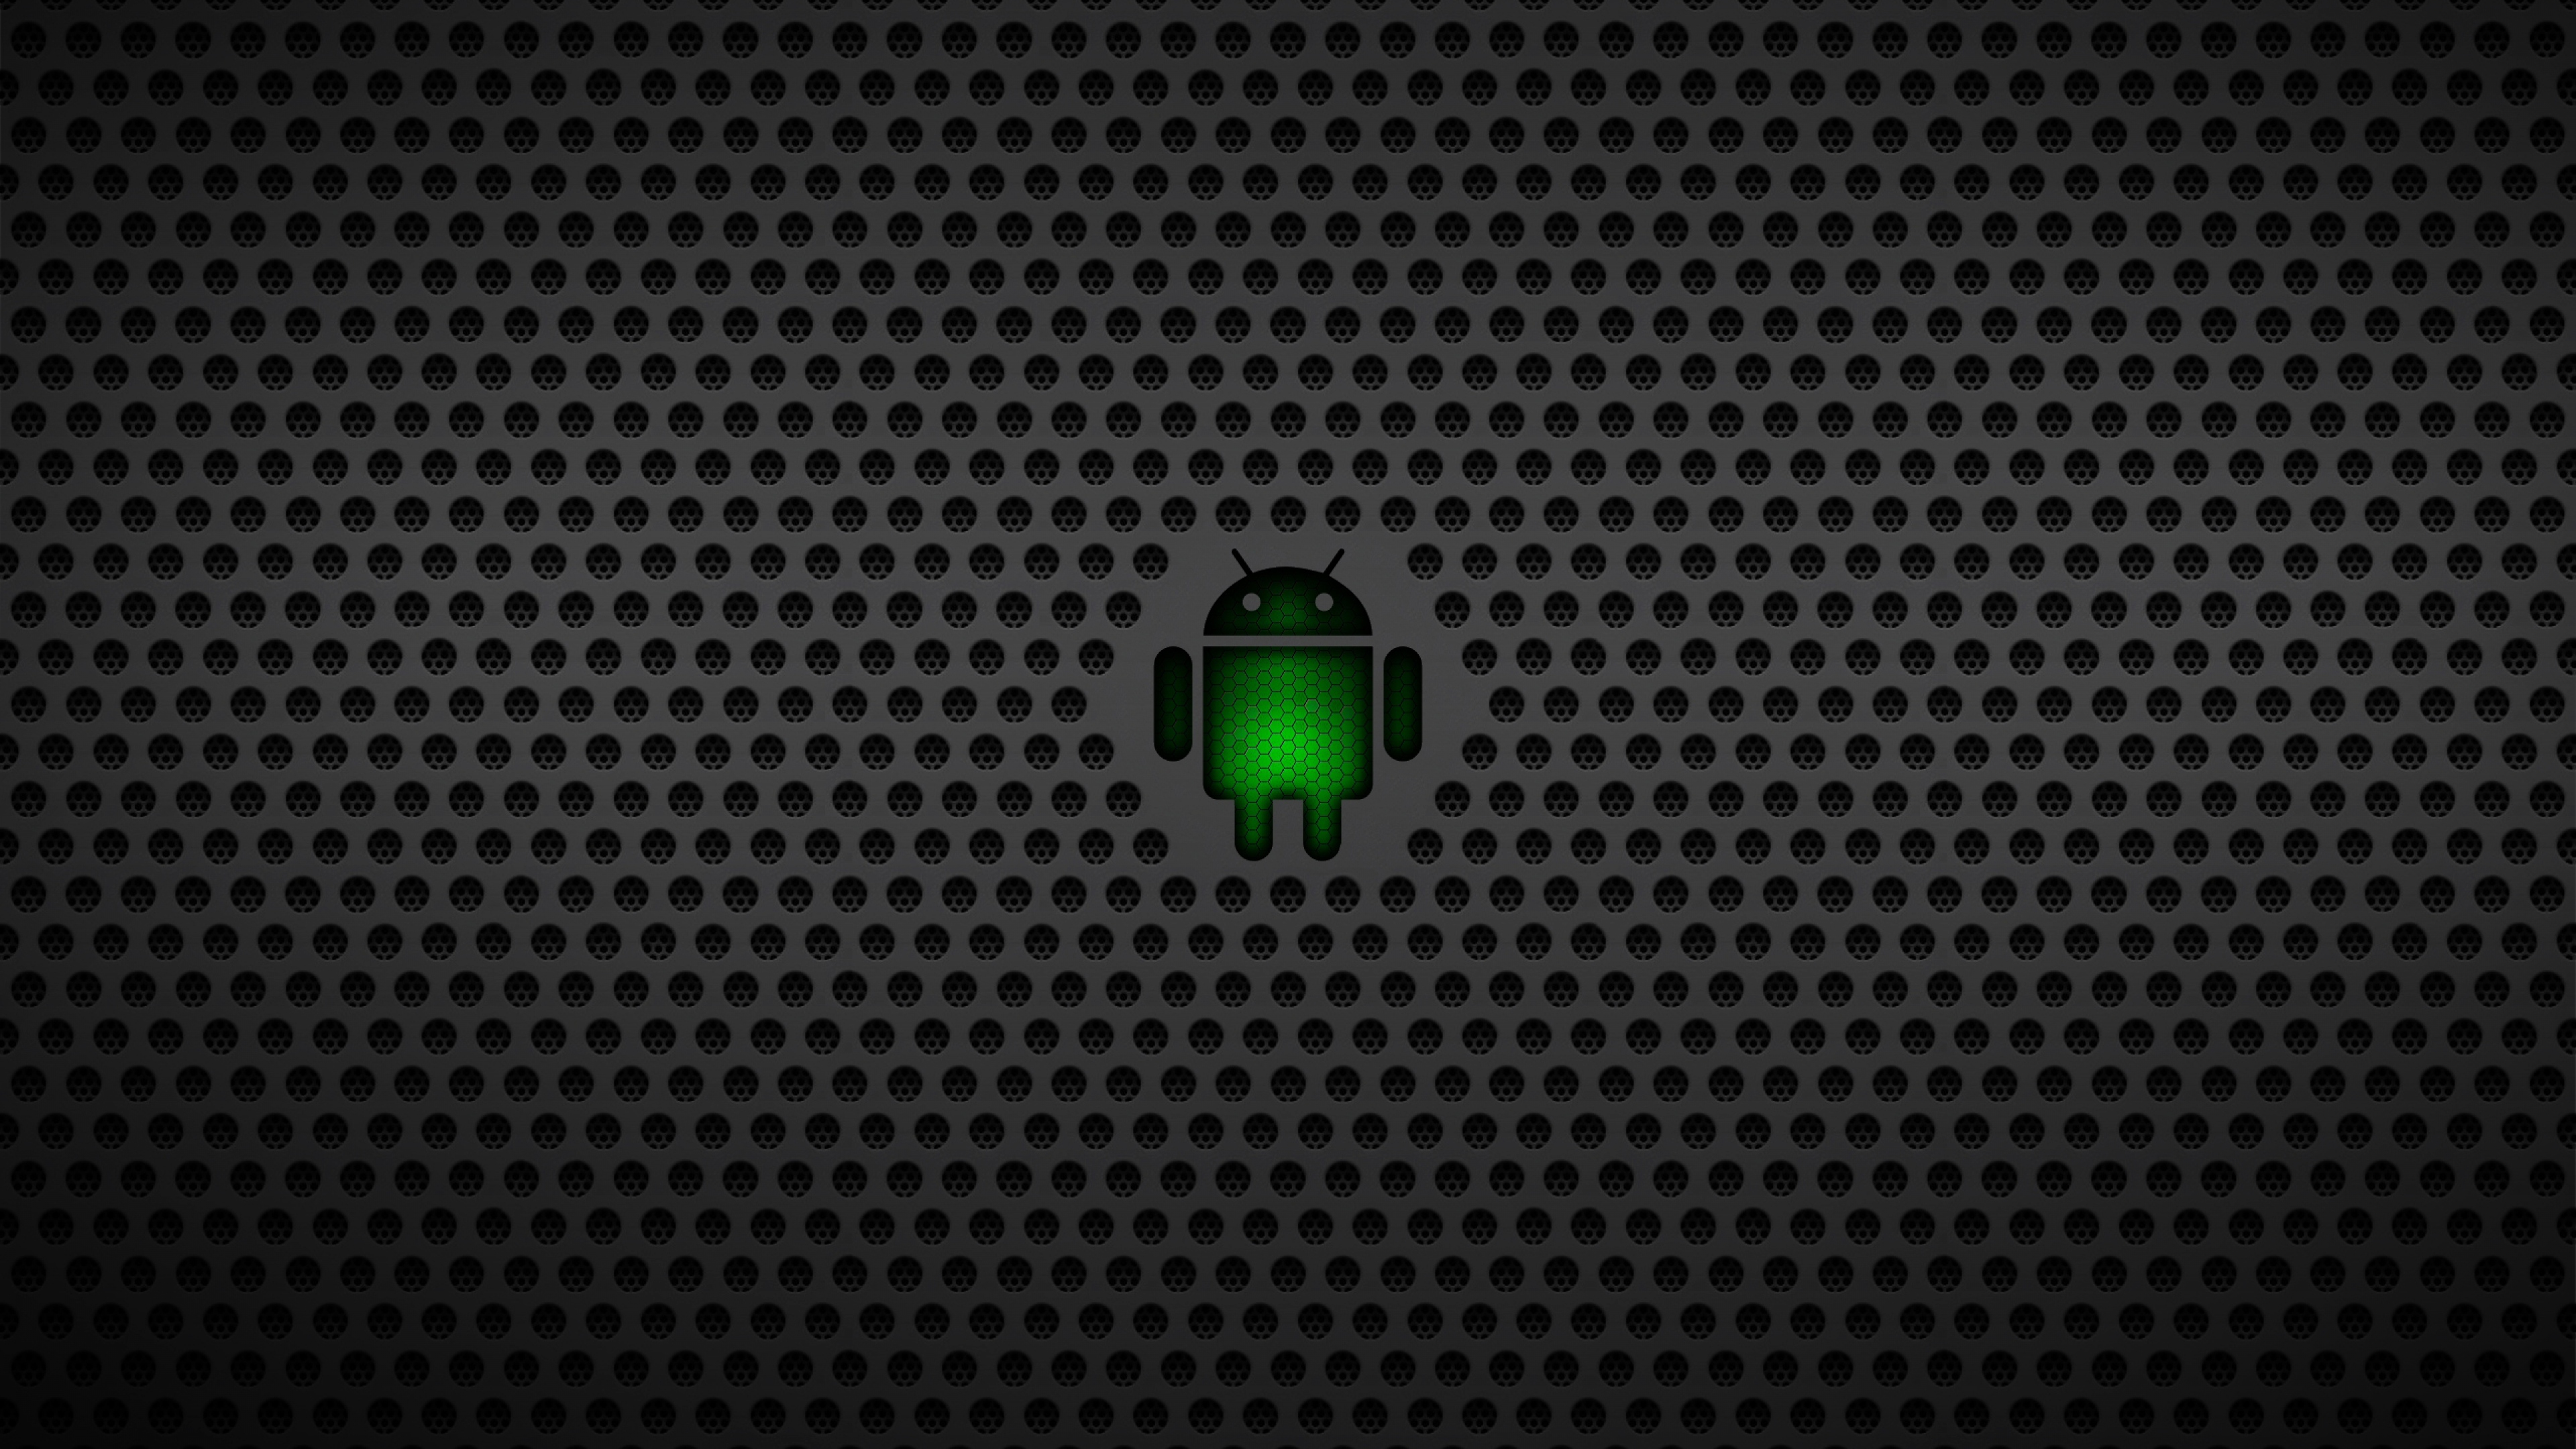 ultra hd 3840x2160 android wallpaper wallpapersafari